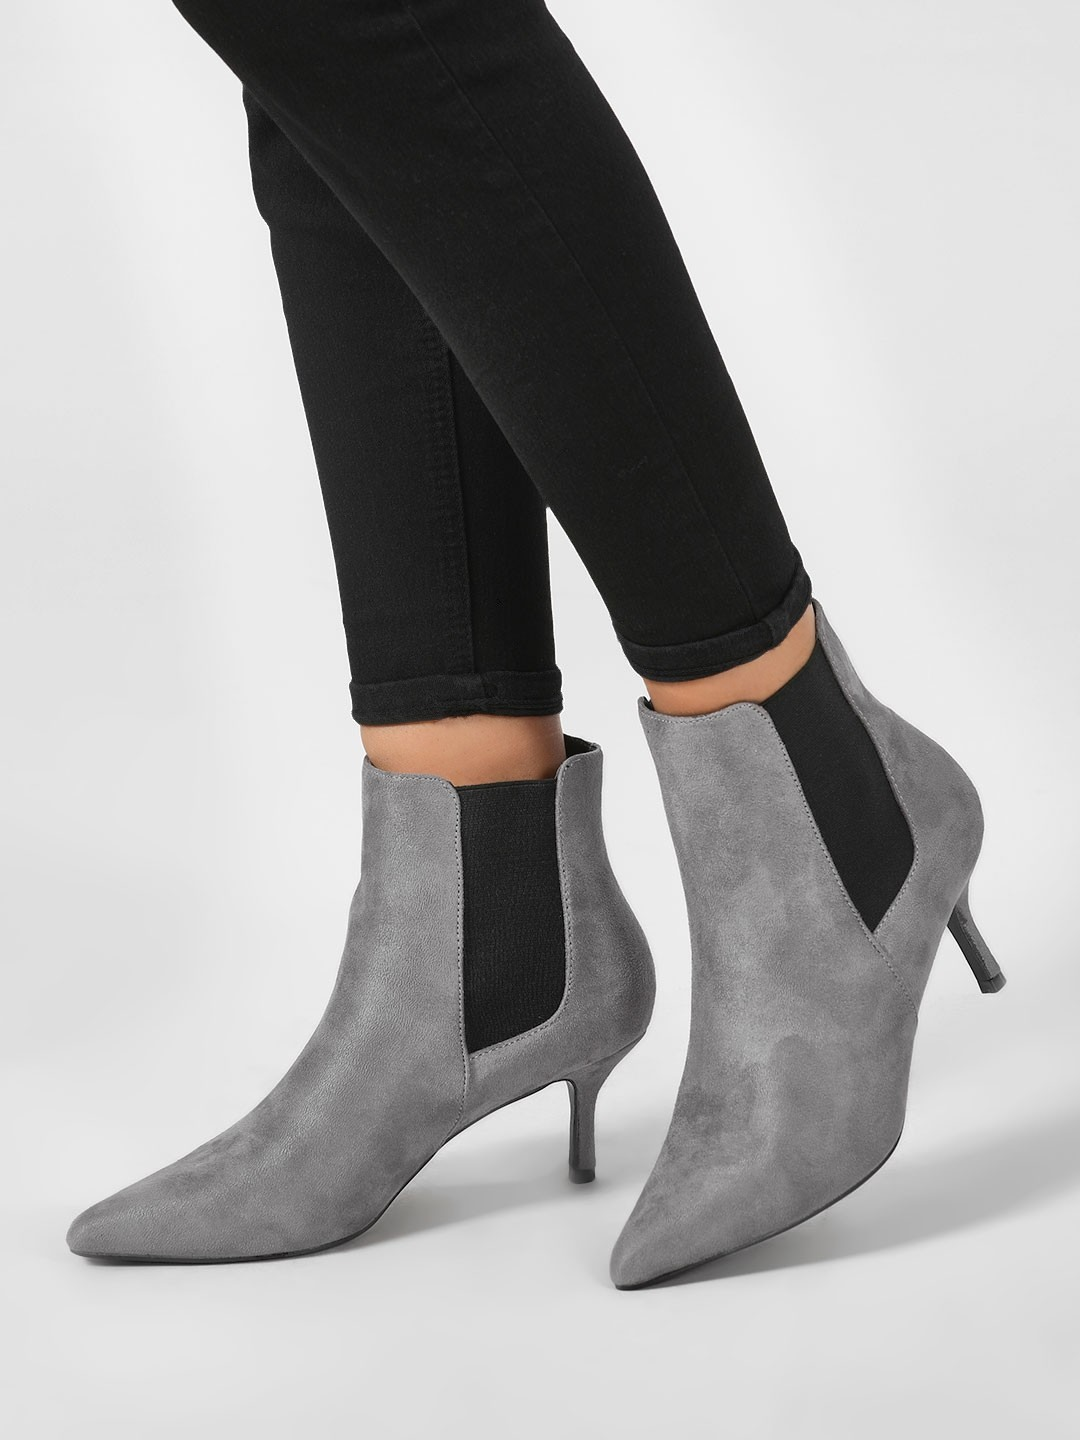 20-types-of-boots-Kitten-Heel-Chelsea-Boots